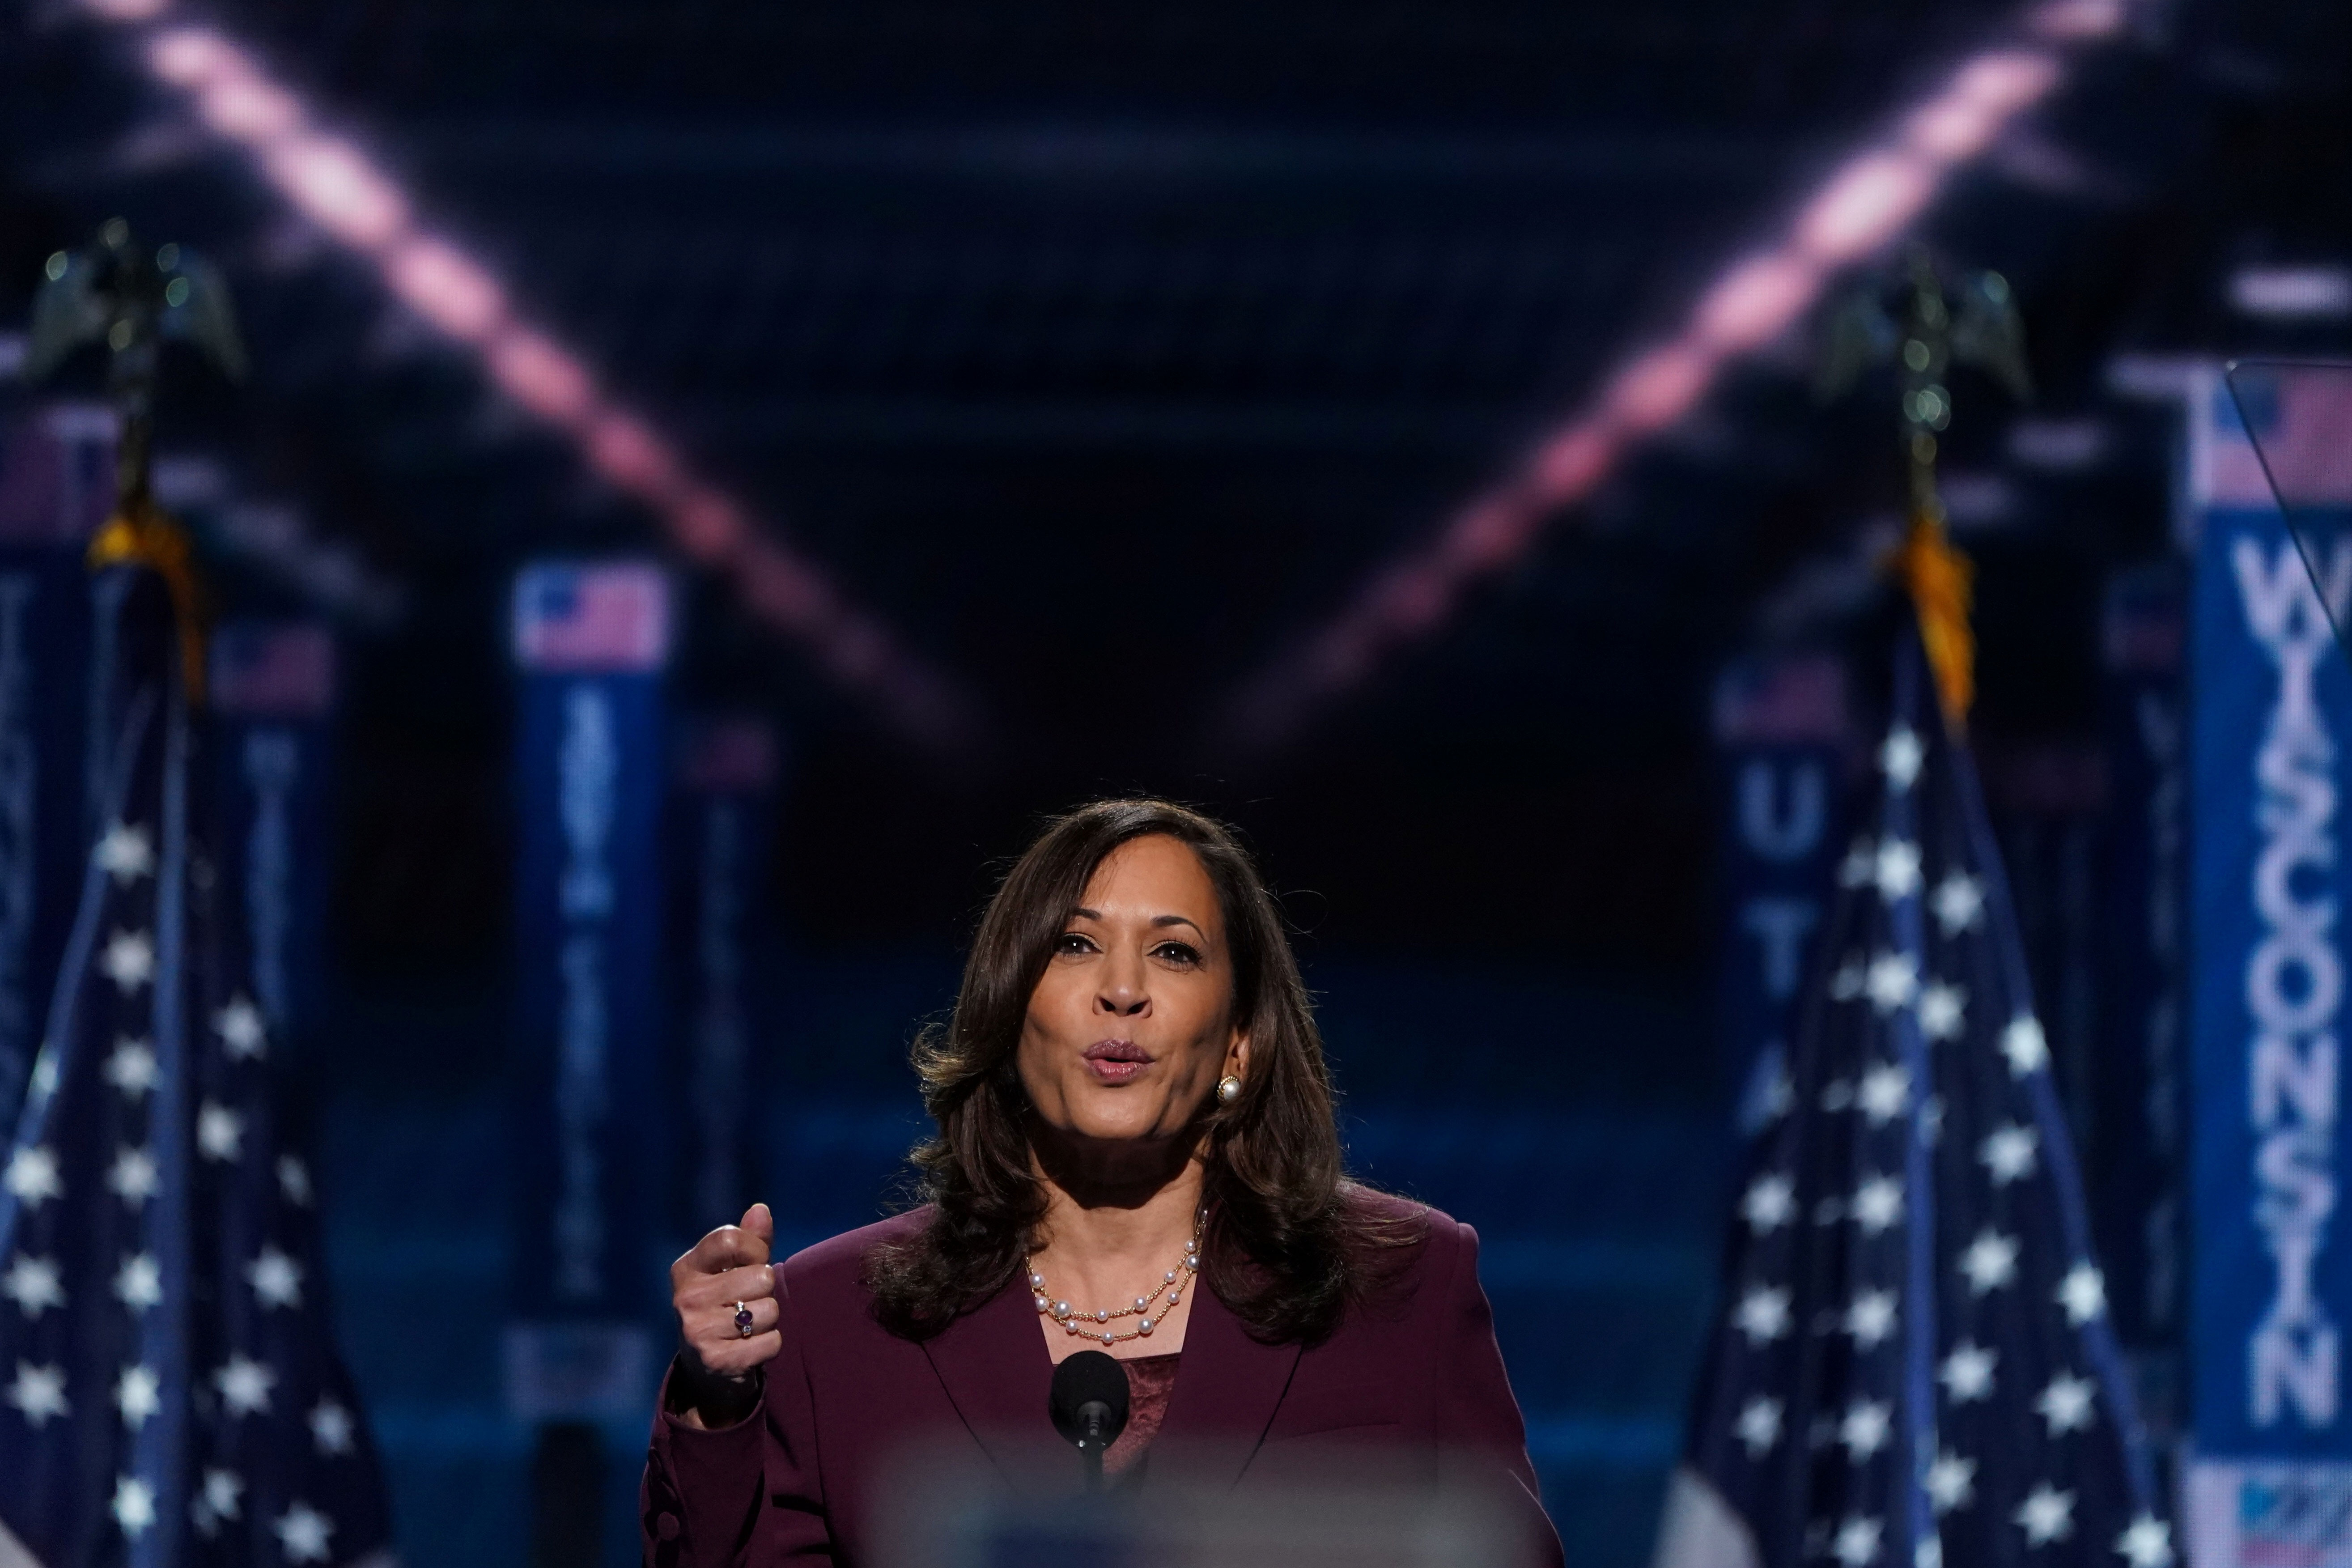 2020-08-20t030742z_1262821626_rc2fhi98t7r9_rtrmadp_3_usa-election-convention